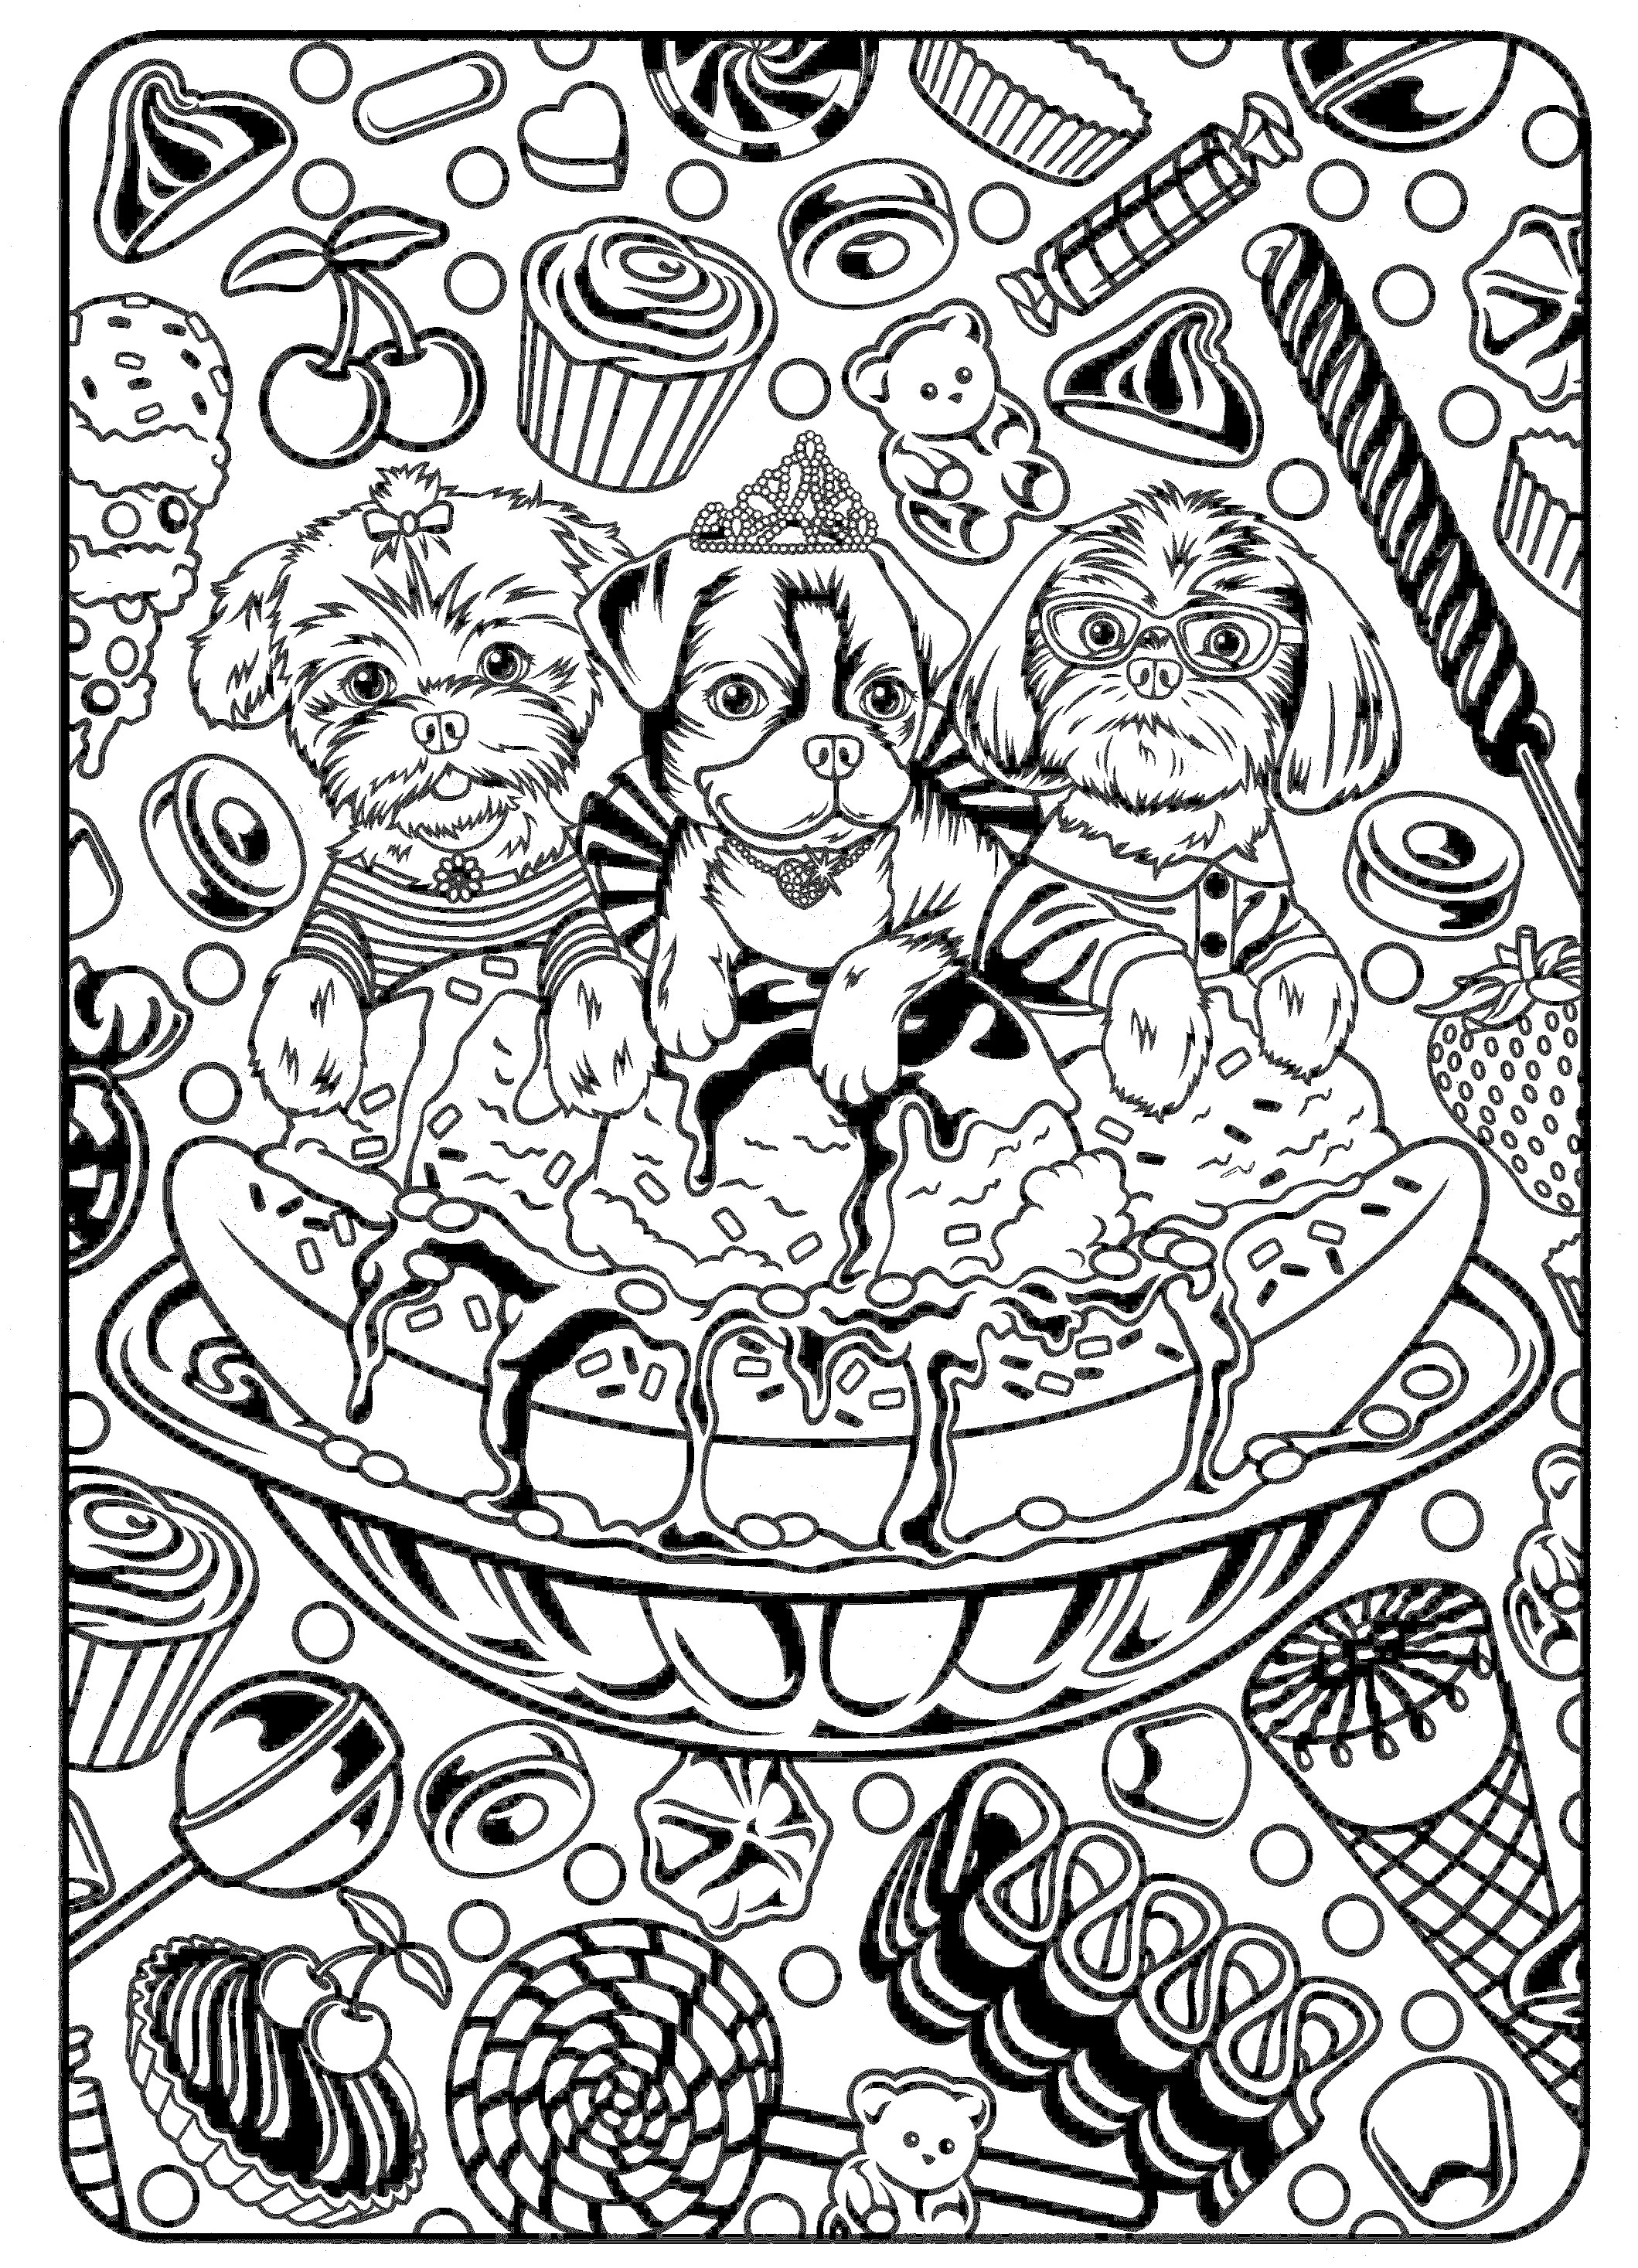 detailed coloring sheets cute coloring pages best coloring pages for kids coloring sheets detailed